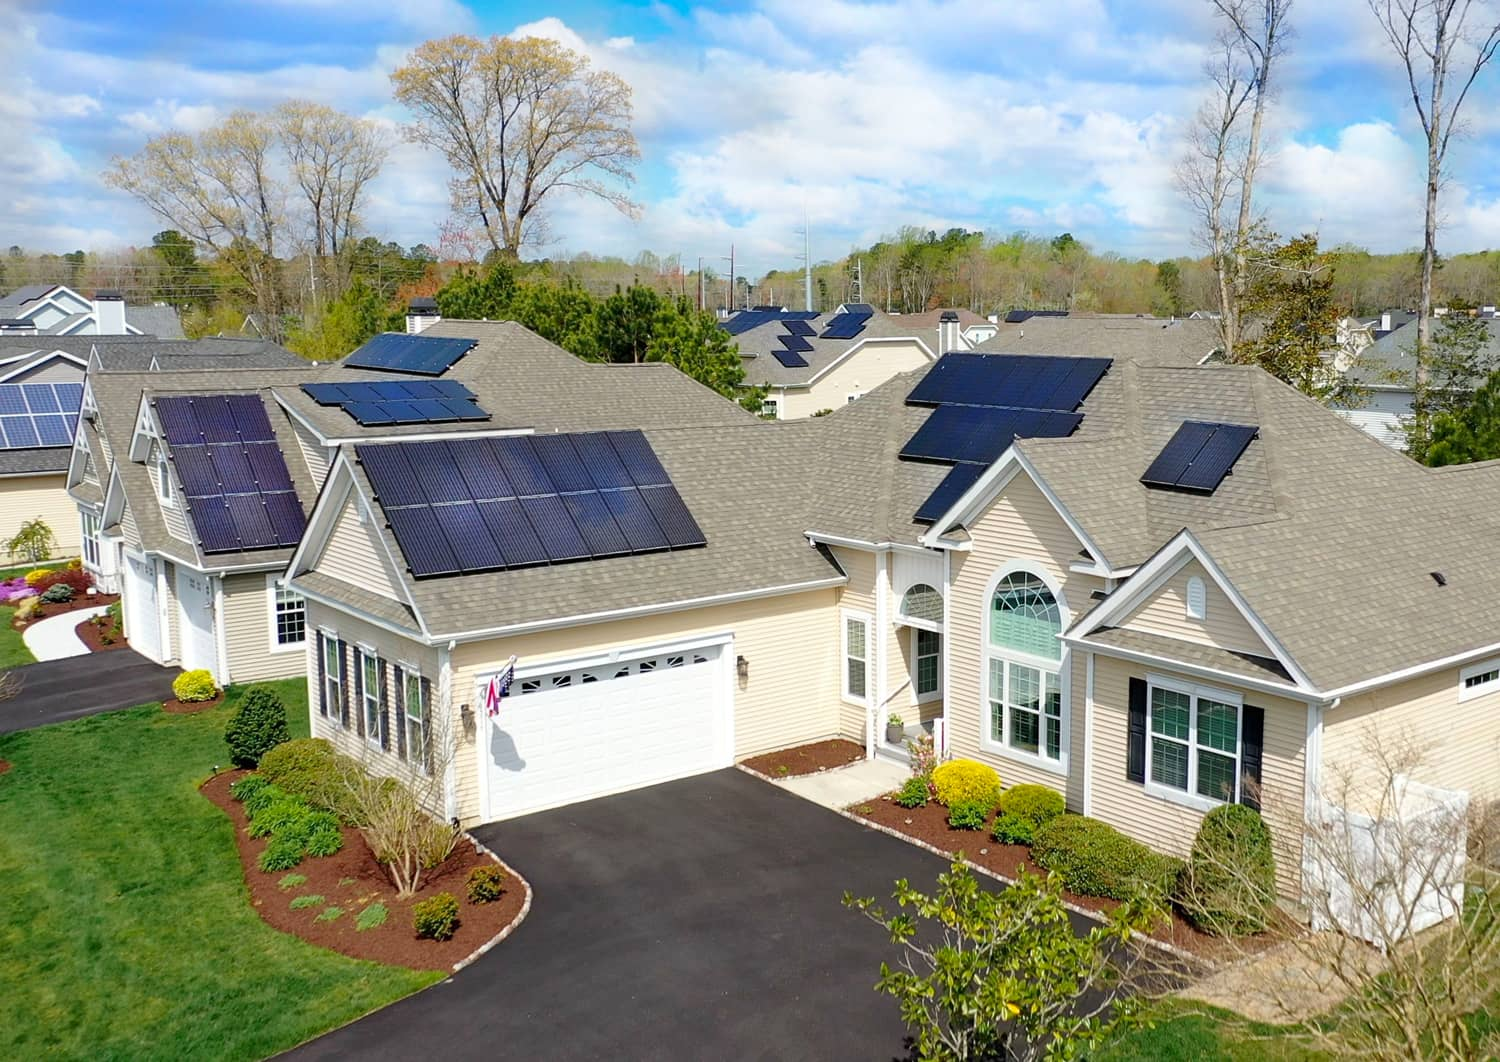 Overhead view of neighborhood and house with solar panels on roof